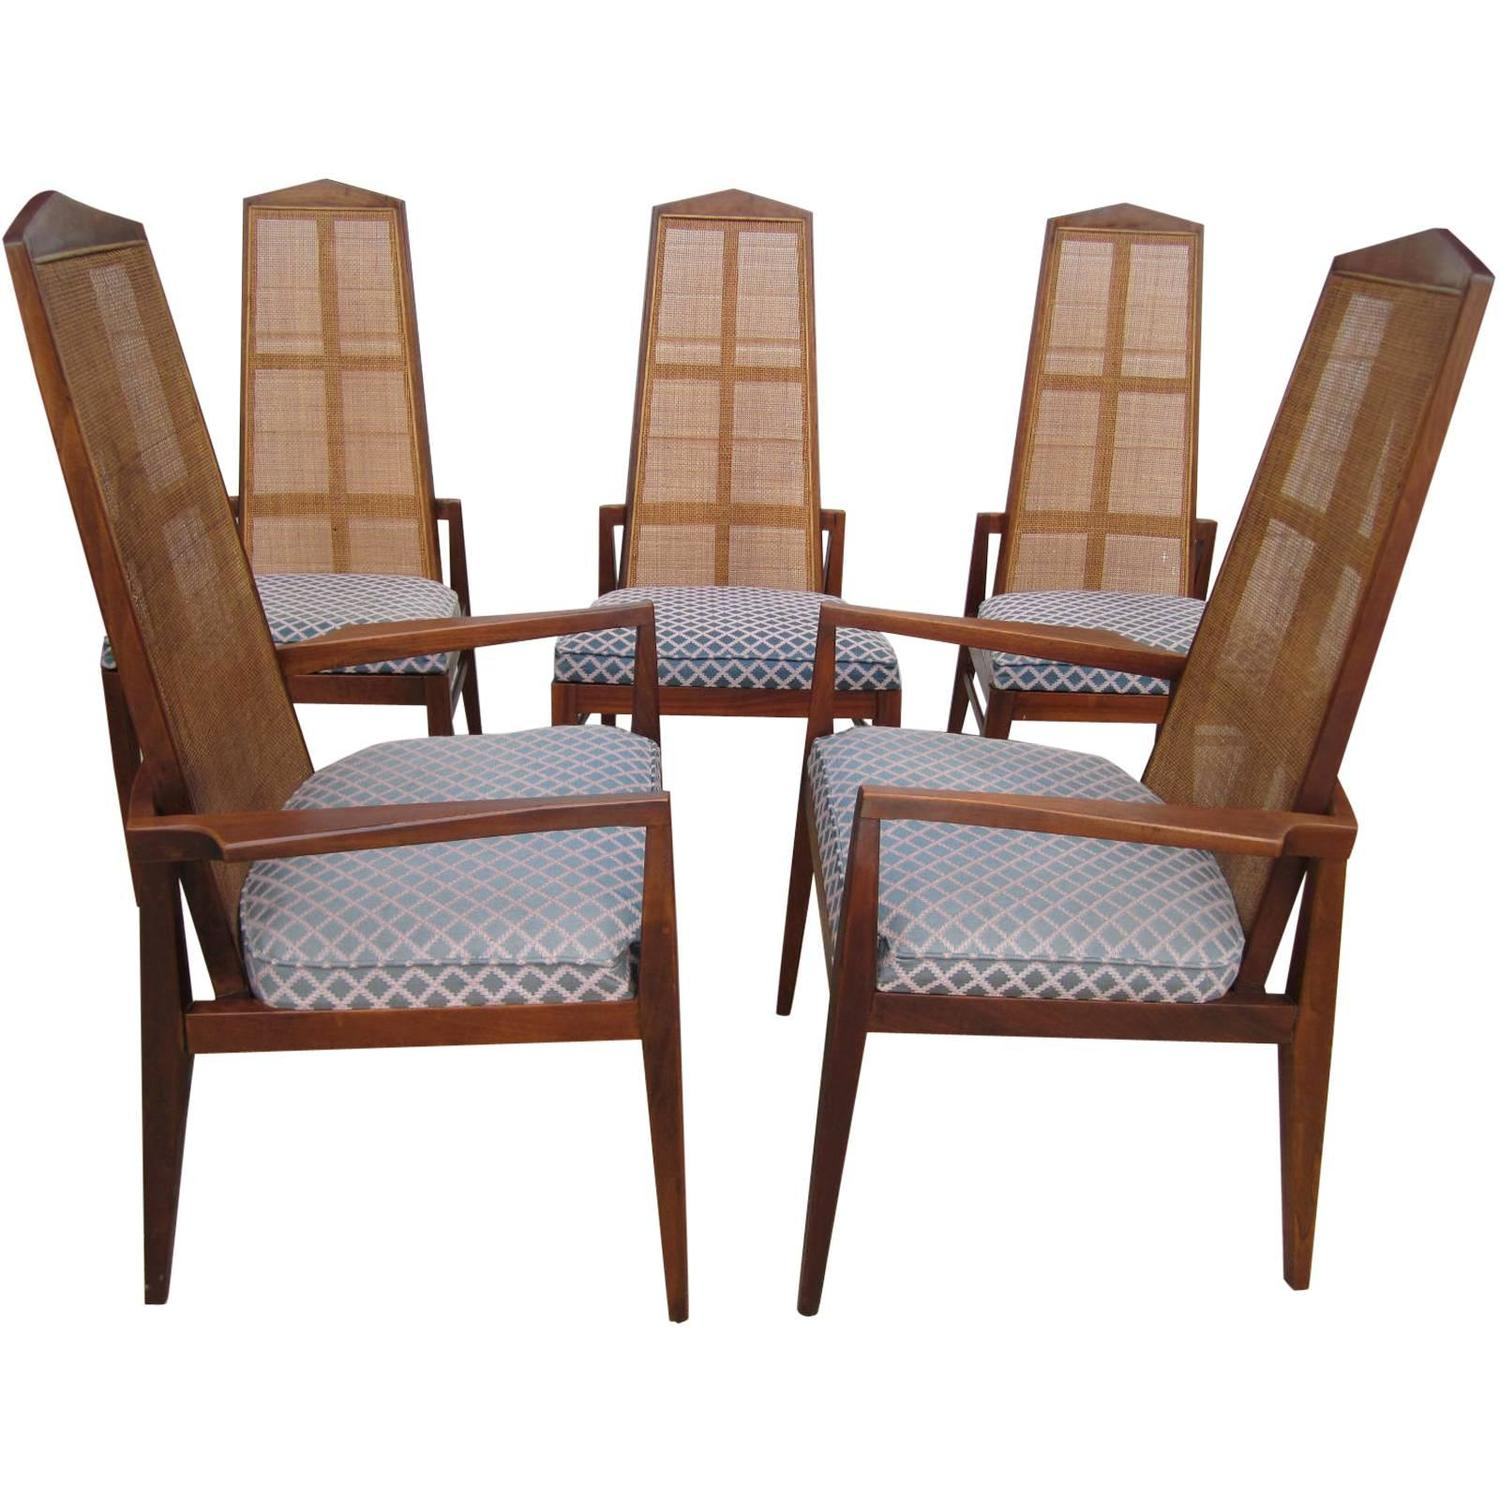 Amazing 5 Walnut Foster And McDavid Cane Back Dining Chairs, Mid Century Modern For  Sale At 1stdibs